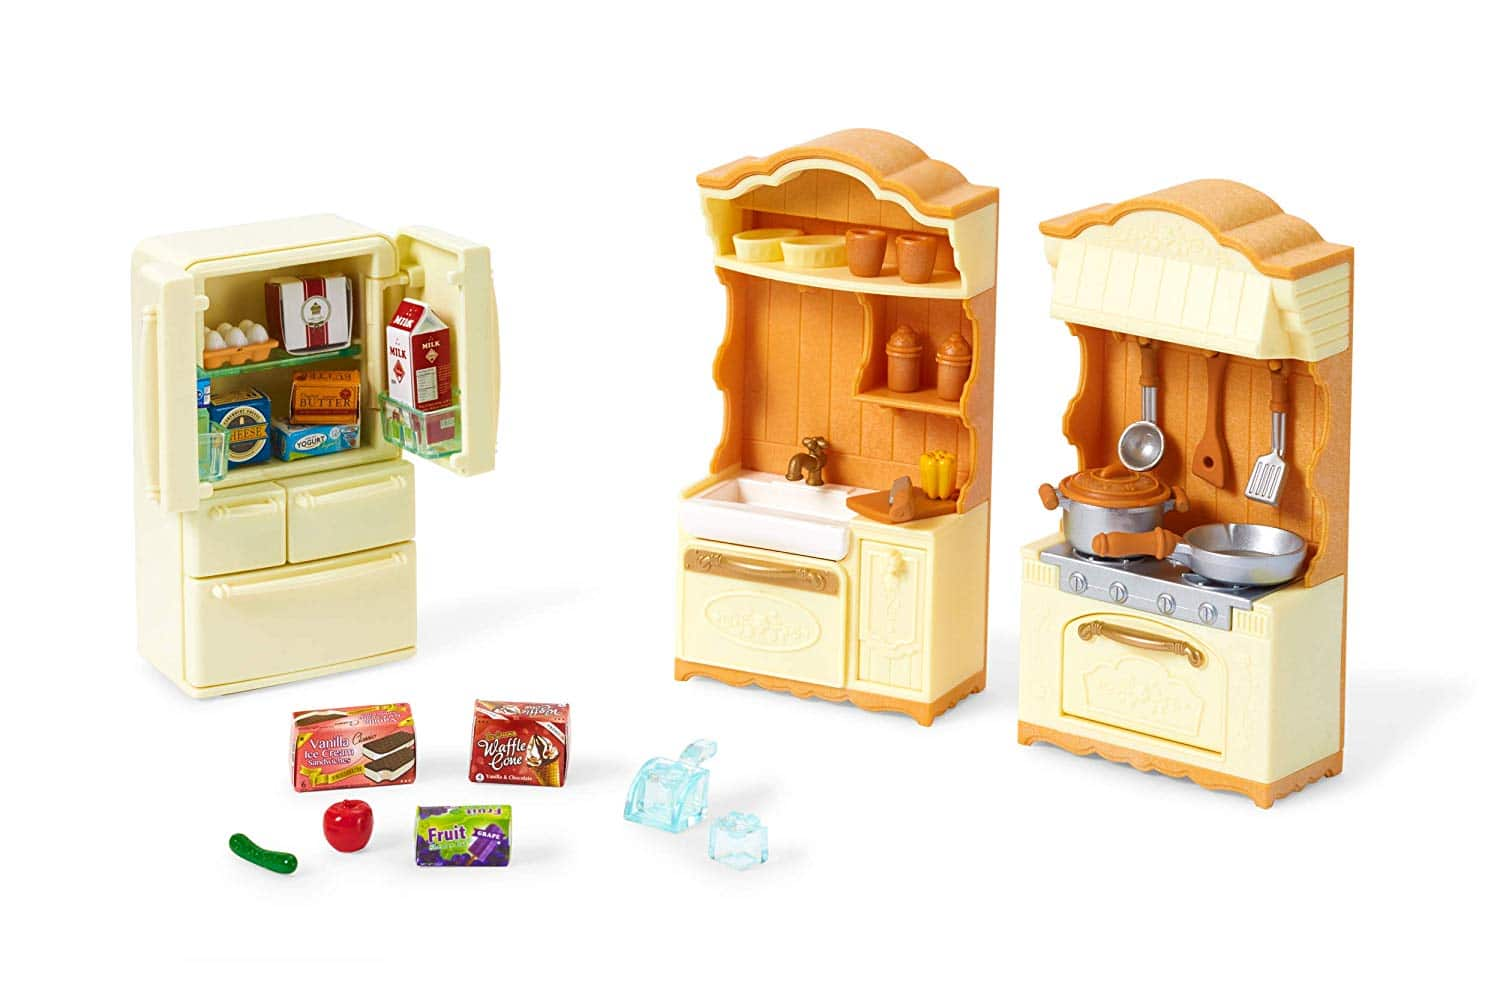 Add-on Item: Calico Critters Kitchen Play Set $4.70 @ Amazon